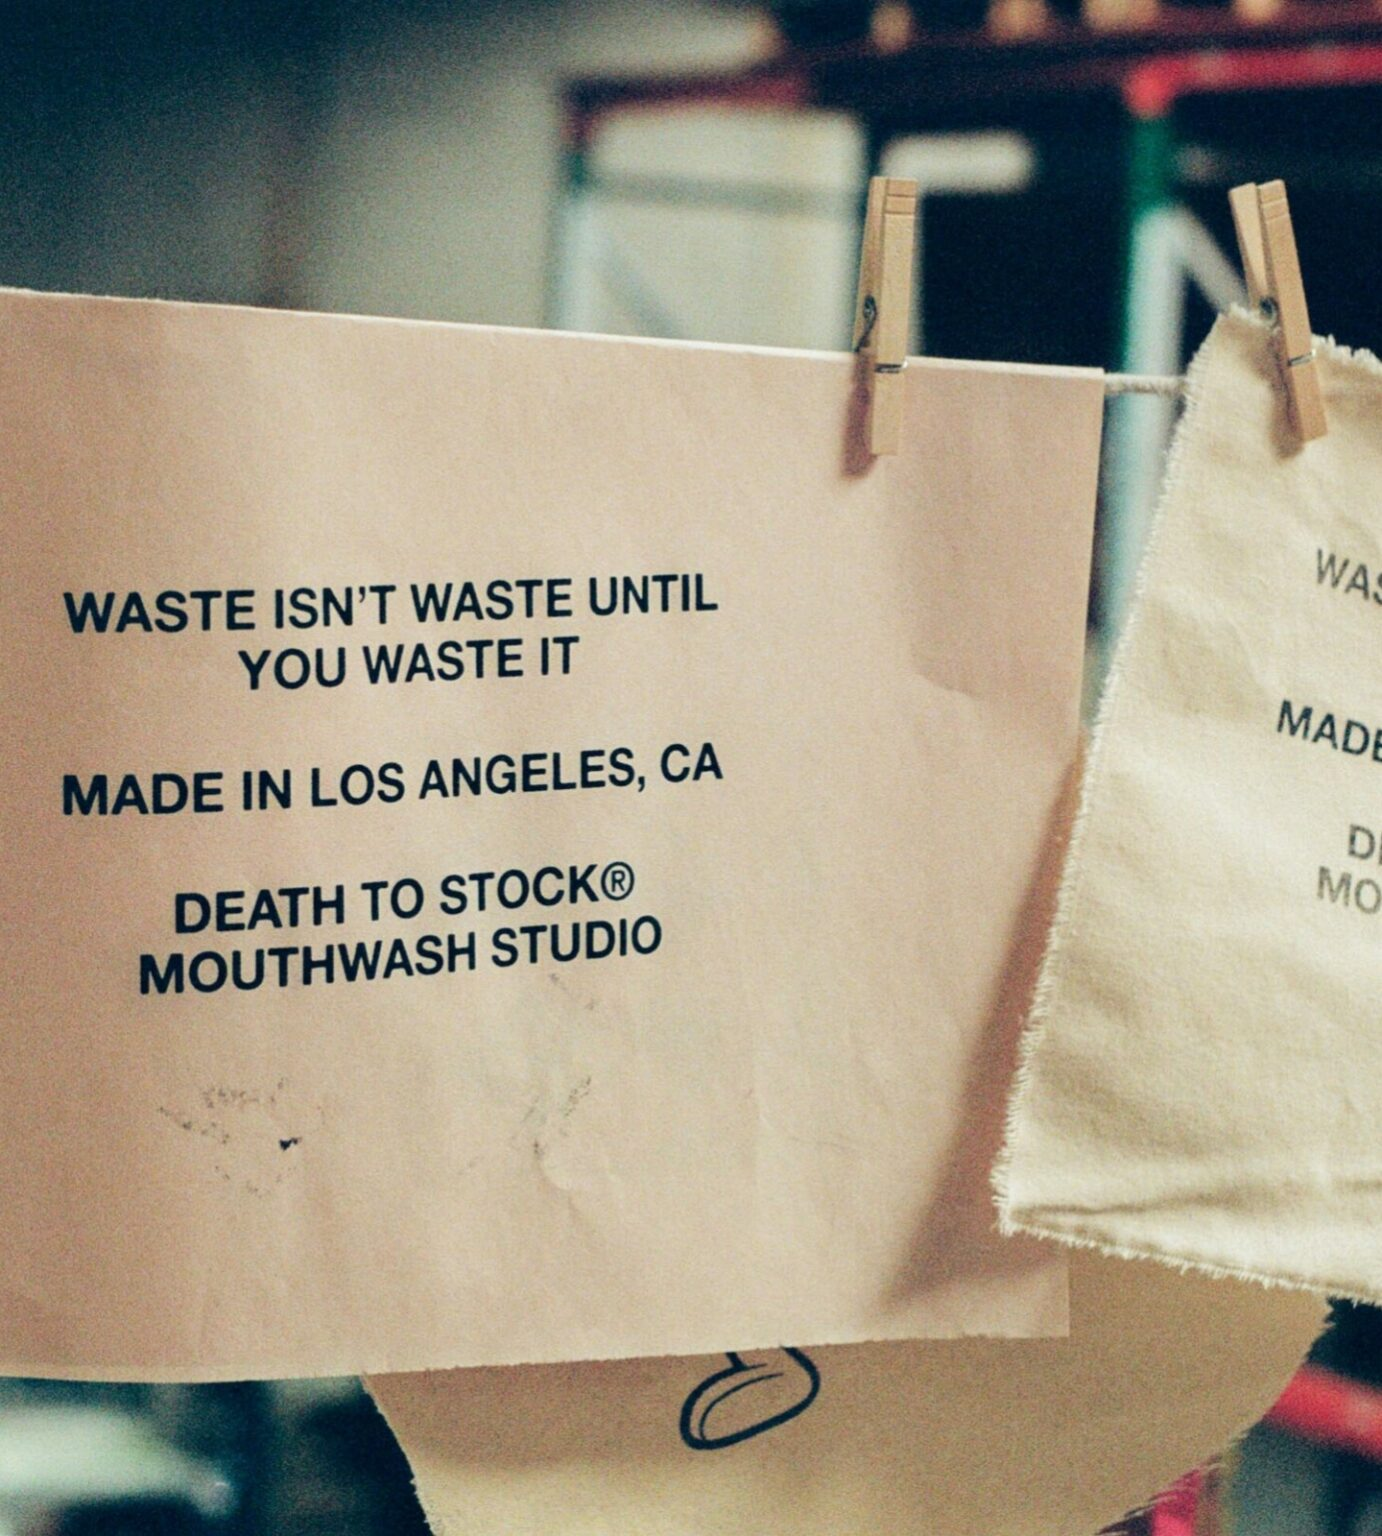 waste is not waste until you waste it flag with clothespins